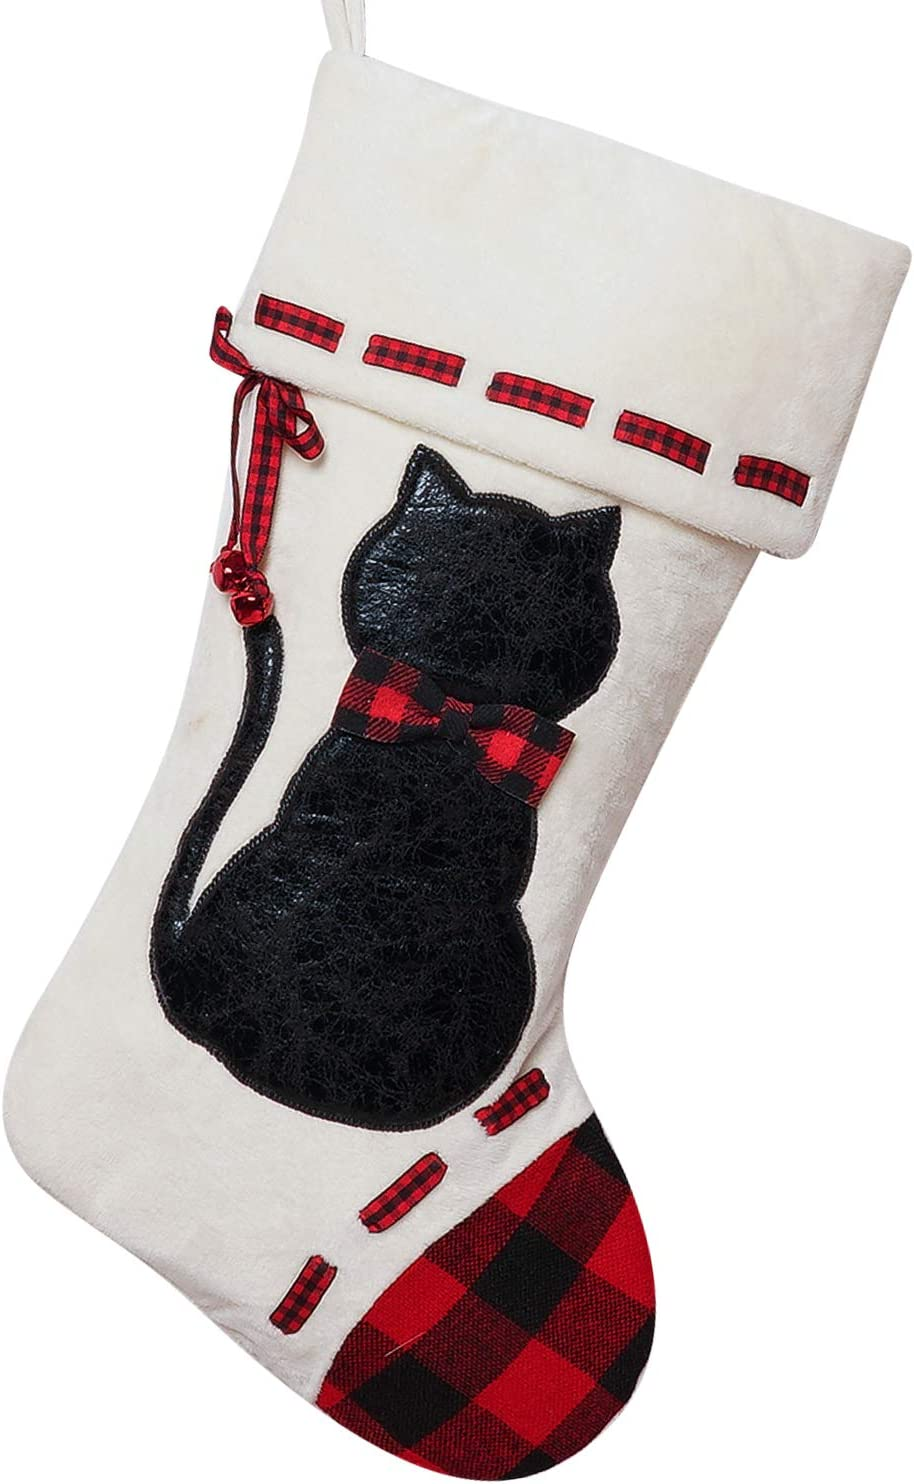 ALLYORS Dog Cat Christmas Stocking, 19''Xmas Pet Hanging Stockings with Fuzzy Santa Hat and Plush Doggie Kitty Embroidered for Pets Gifts Bag Personalized Cuff Lovely Home Holiday Decoration (wcat)